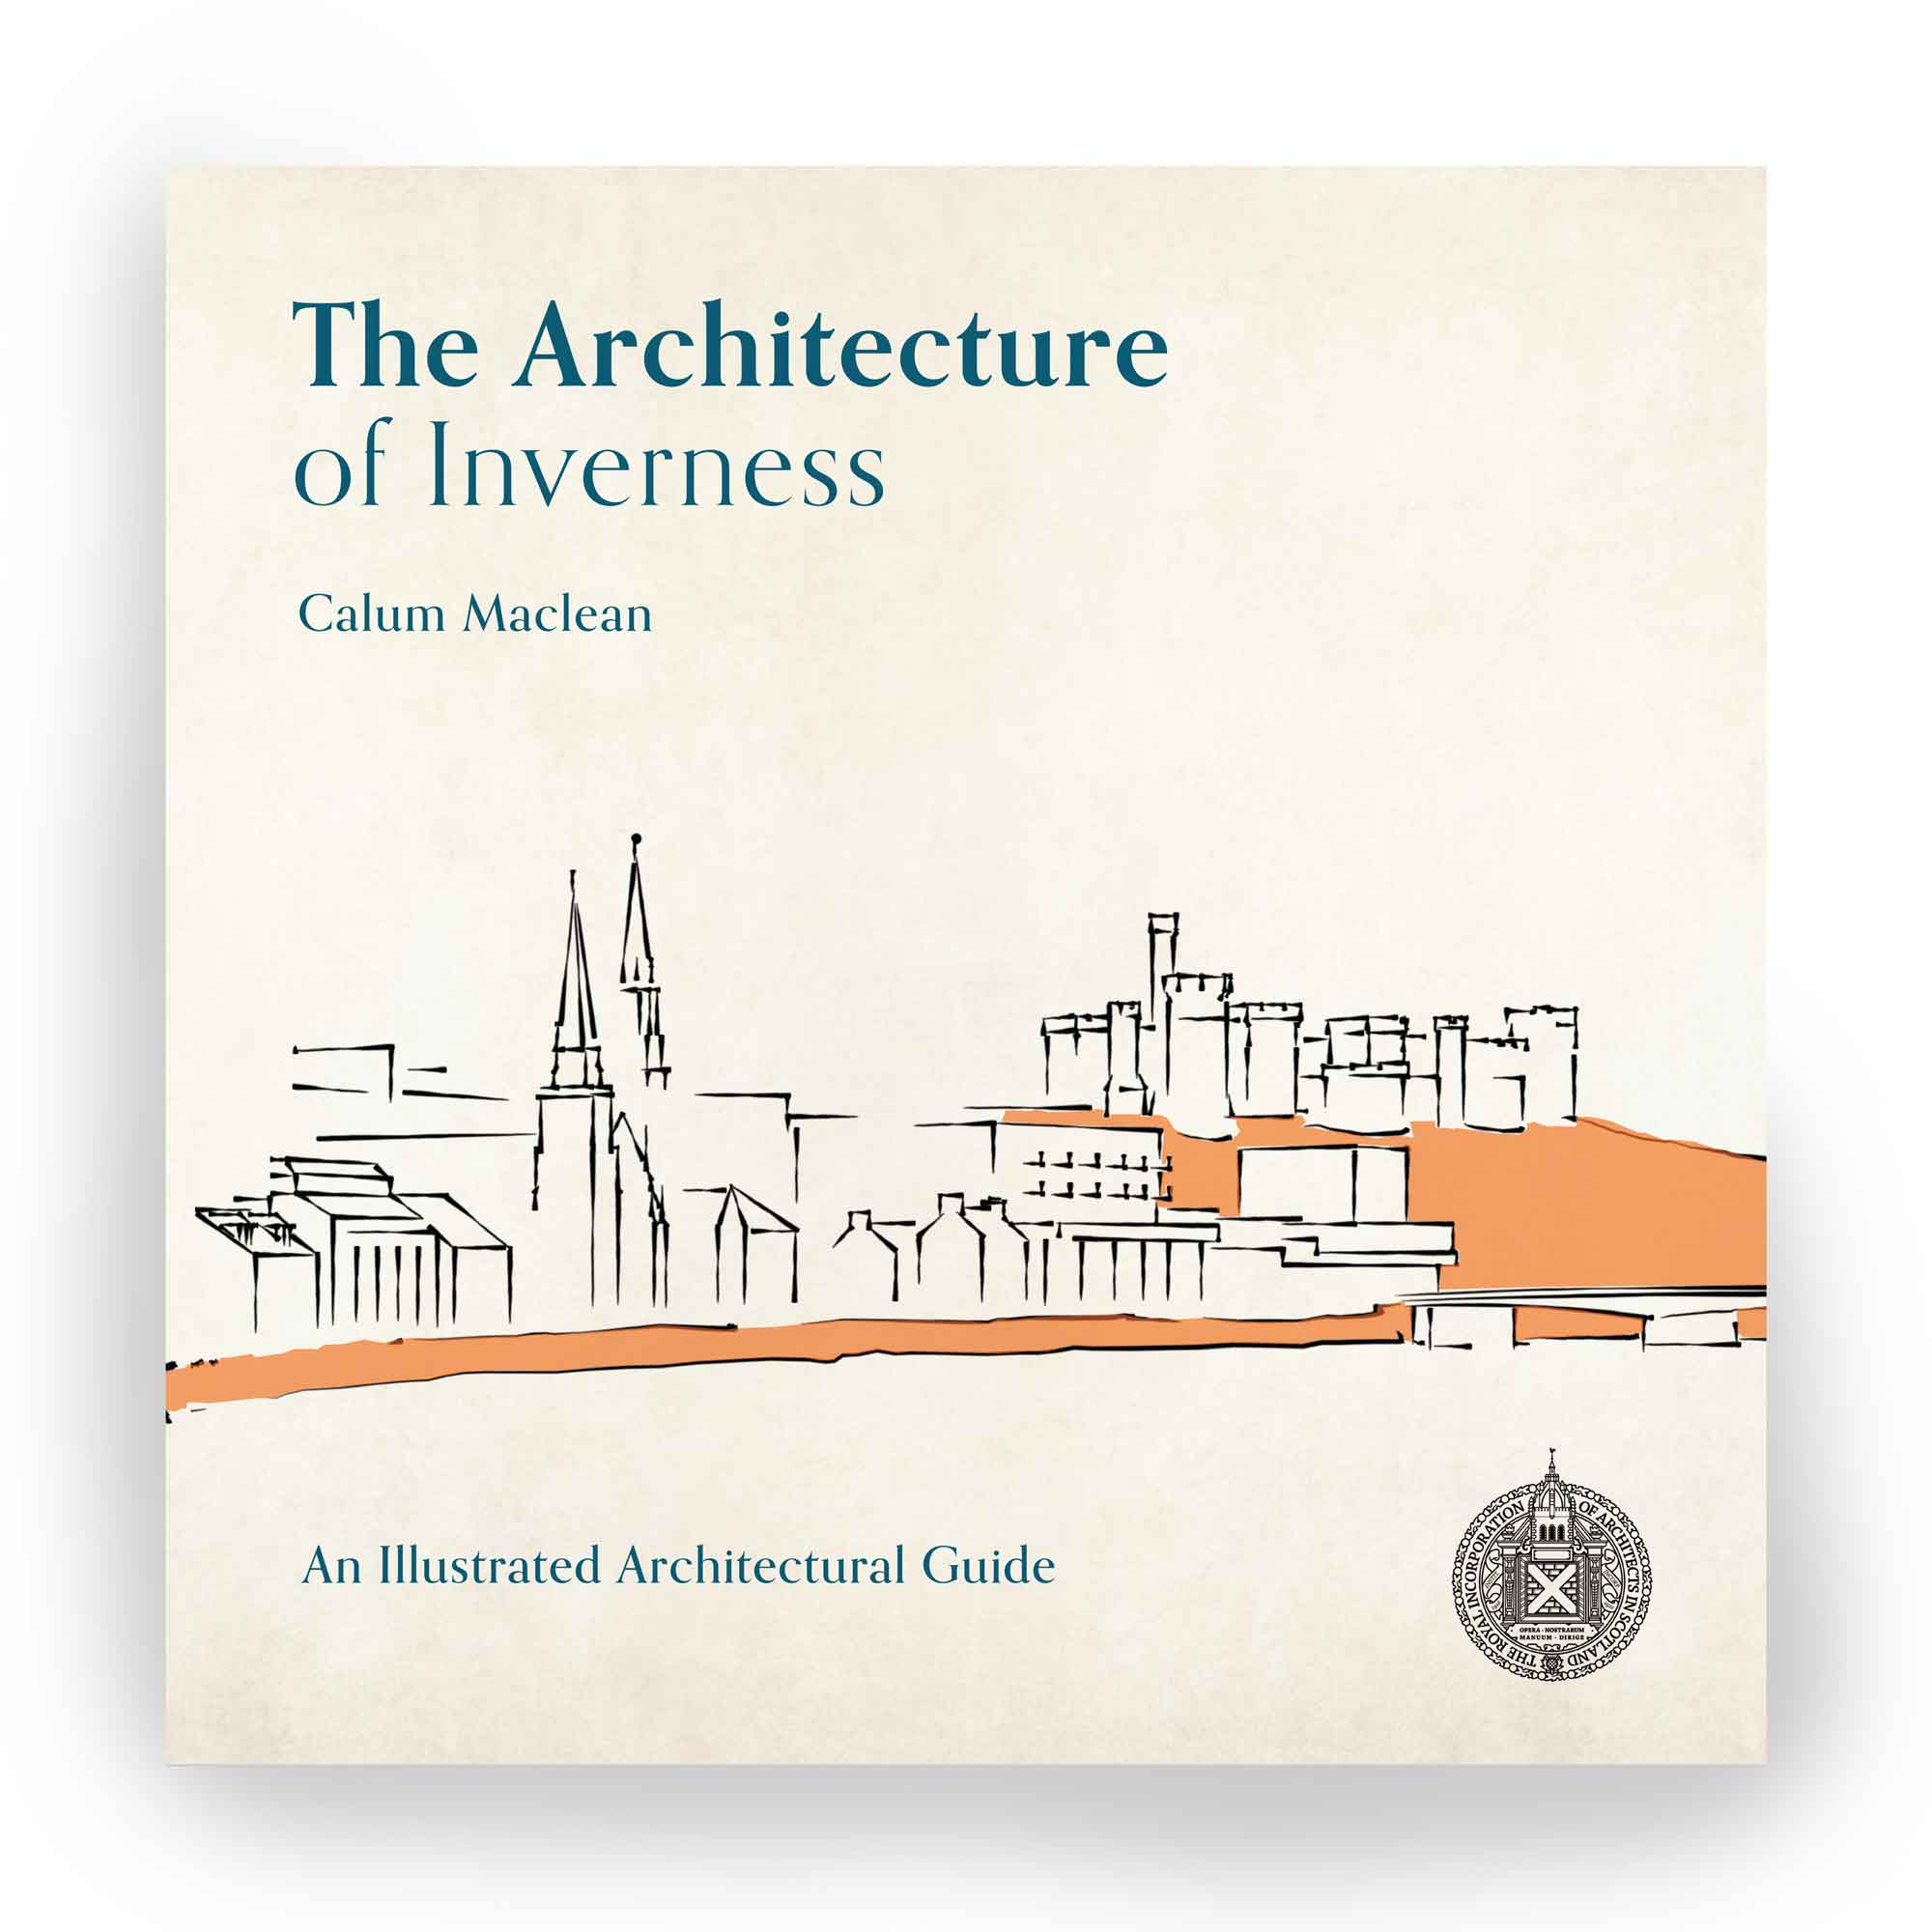 The Architecture of Inverness Book Cover